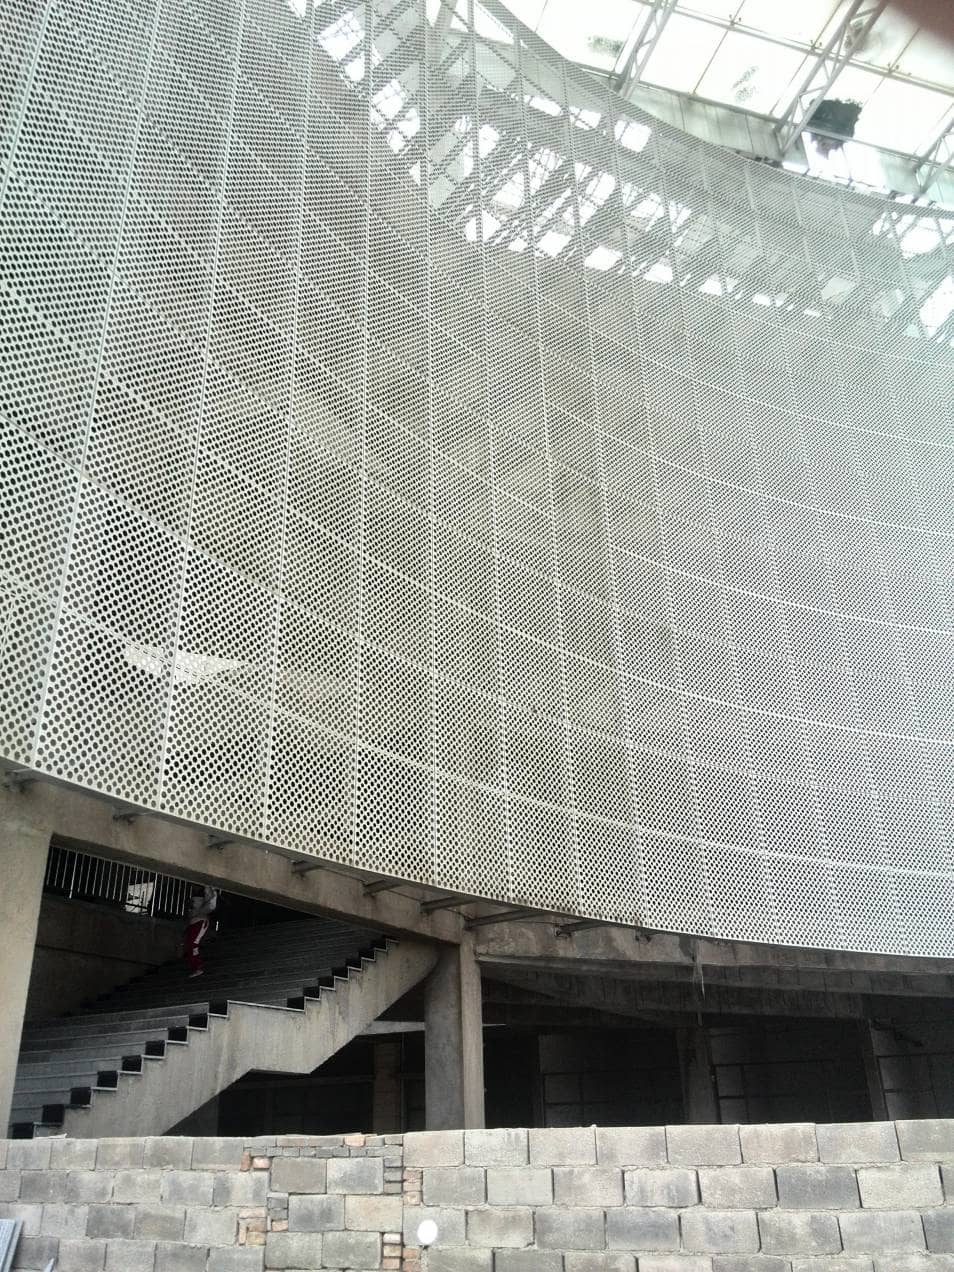 Perforated Metal Building Cladding